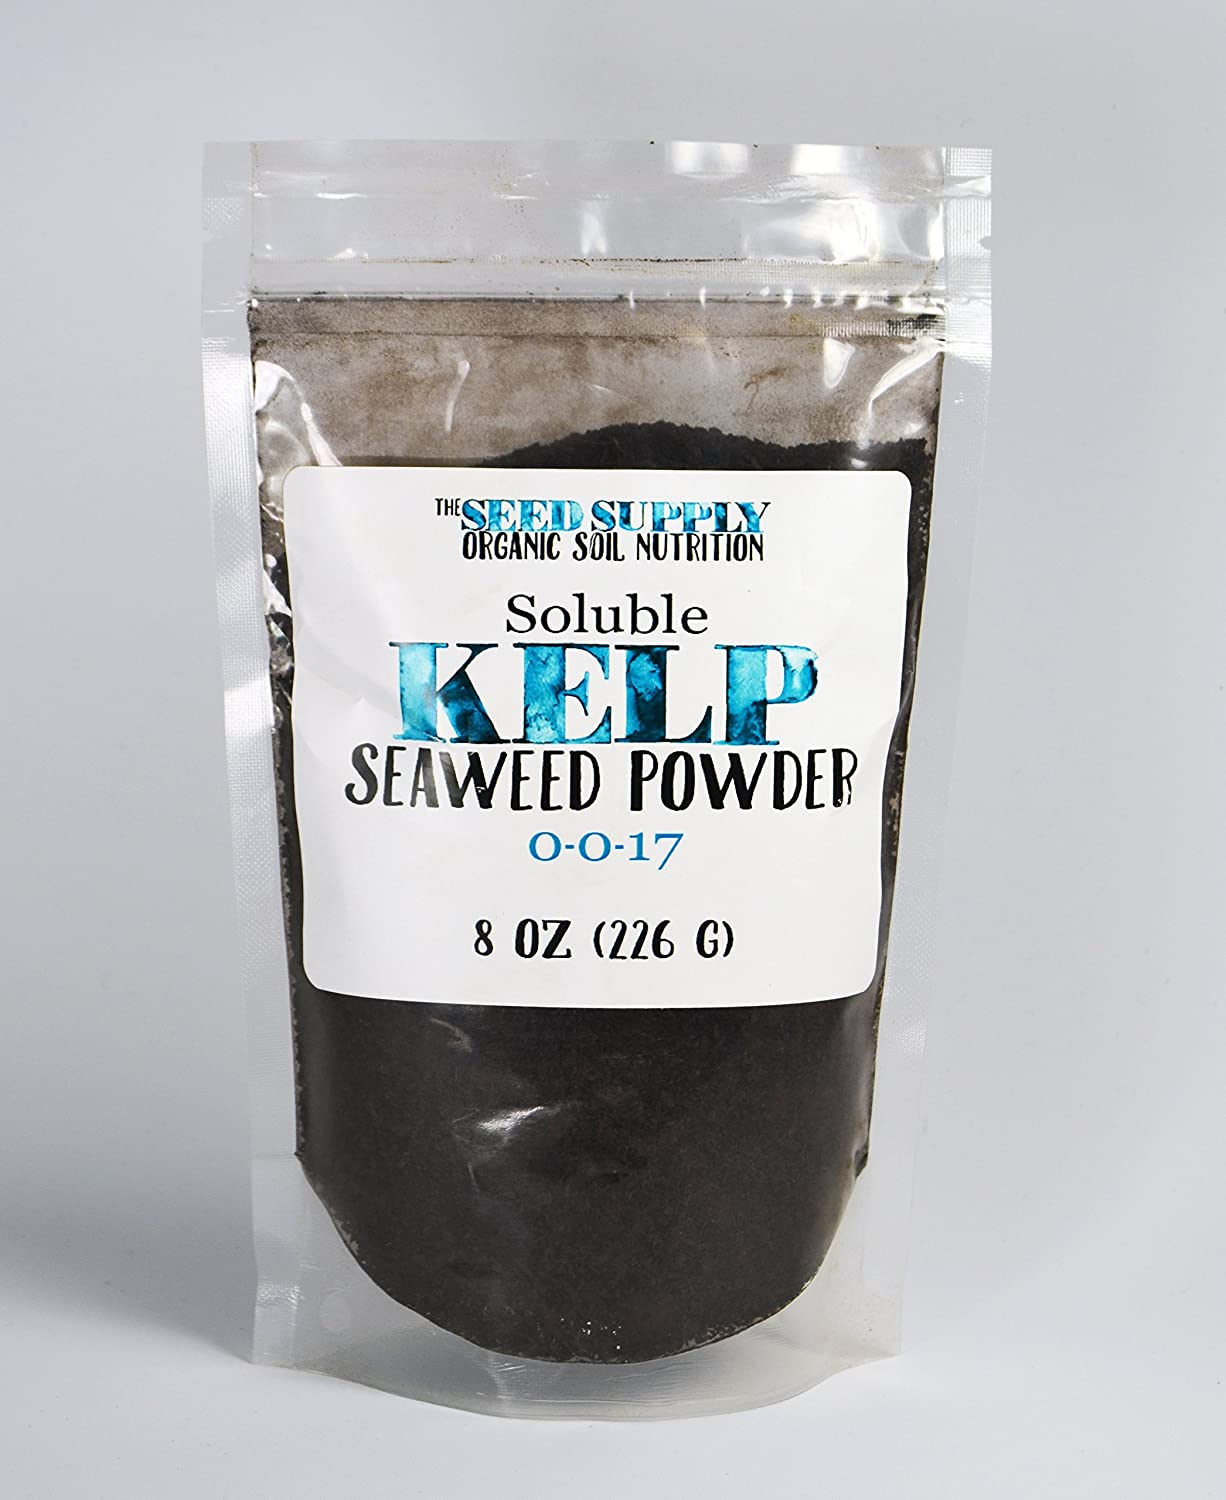 Soluble Kelp Seaweed Powder - 8 Ounces for Plant Root Development and Growth Stimulant 0-0-17 Organic Fertilizer